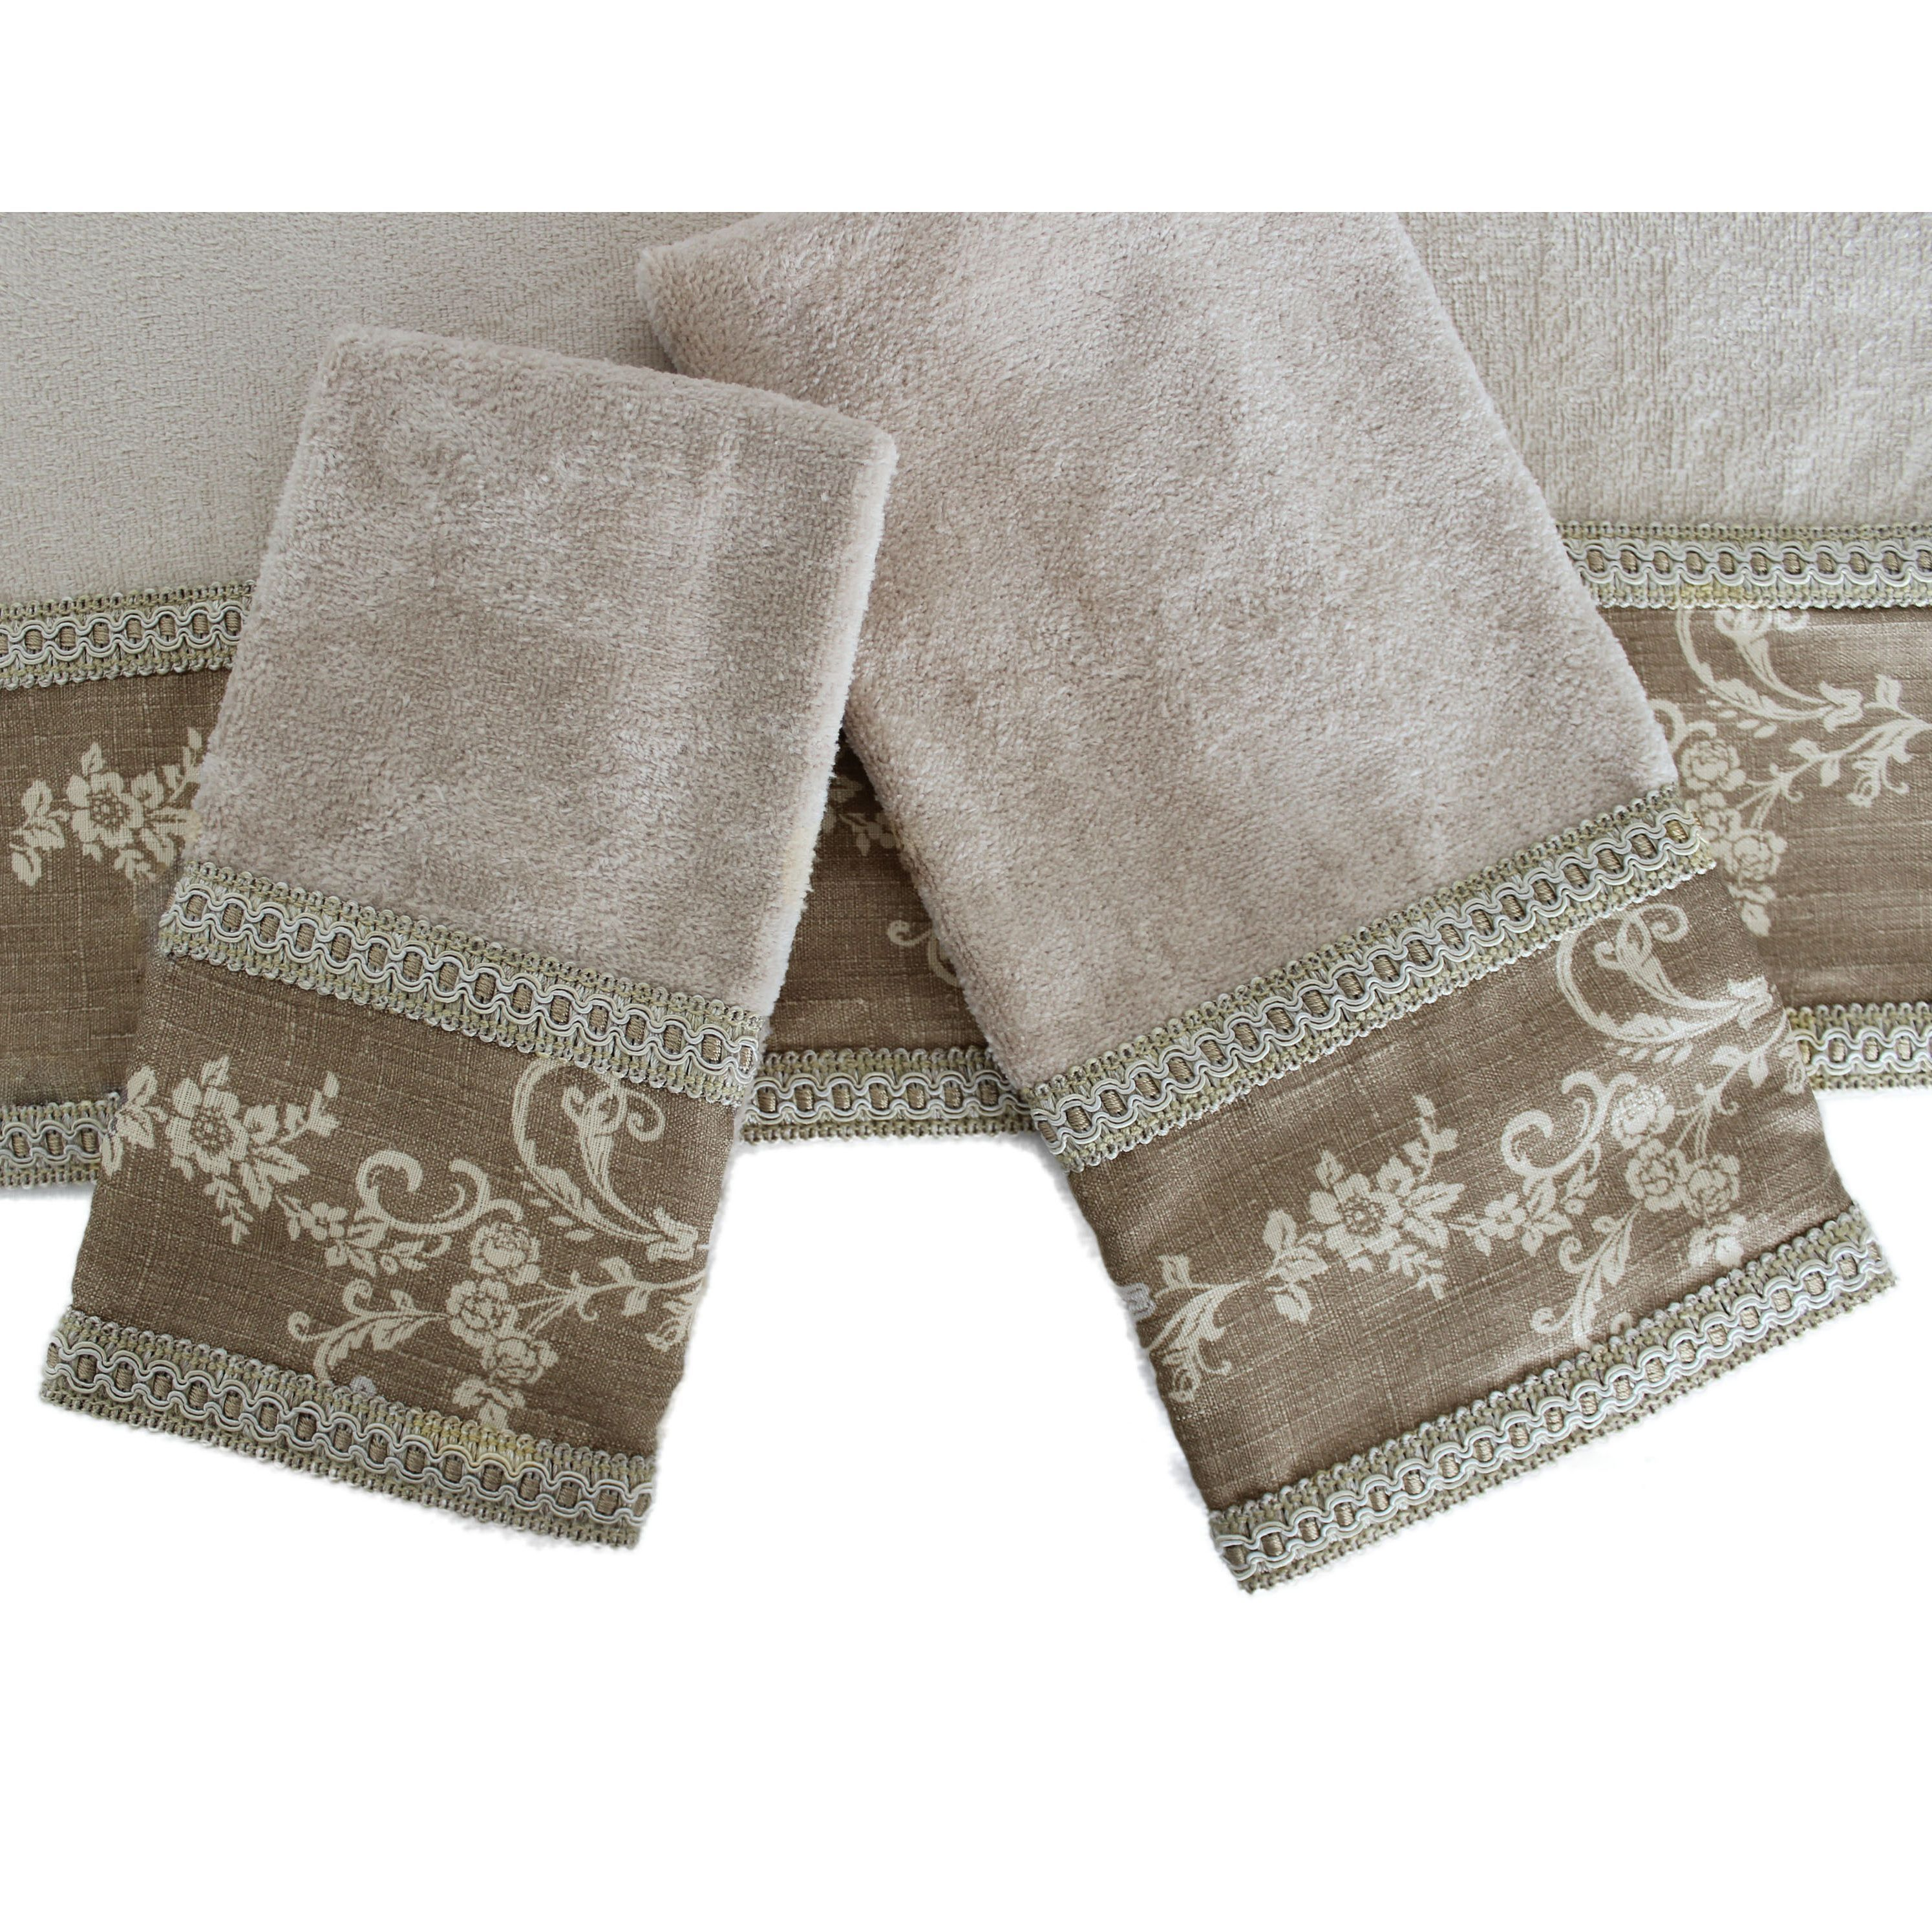 Decorative Bath Towel Sets Add A Touch Of Elegance To Your Bathroom With This Threepiece